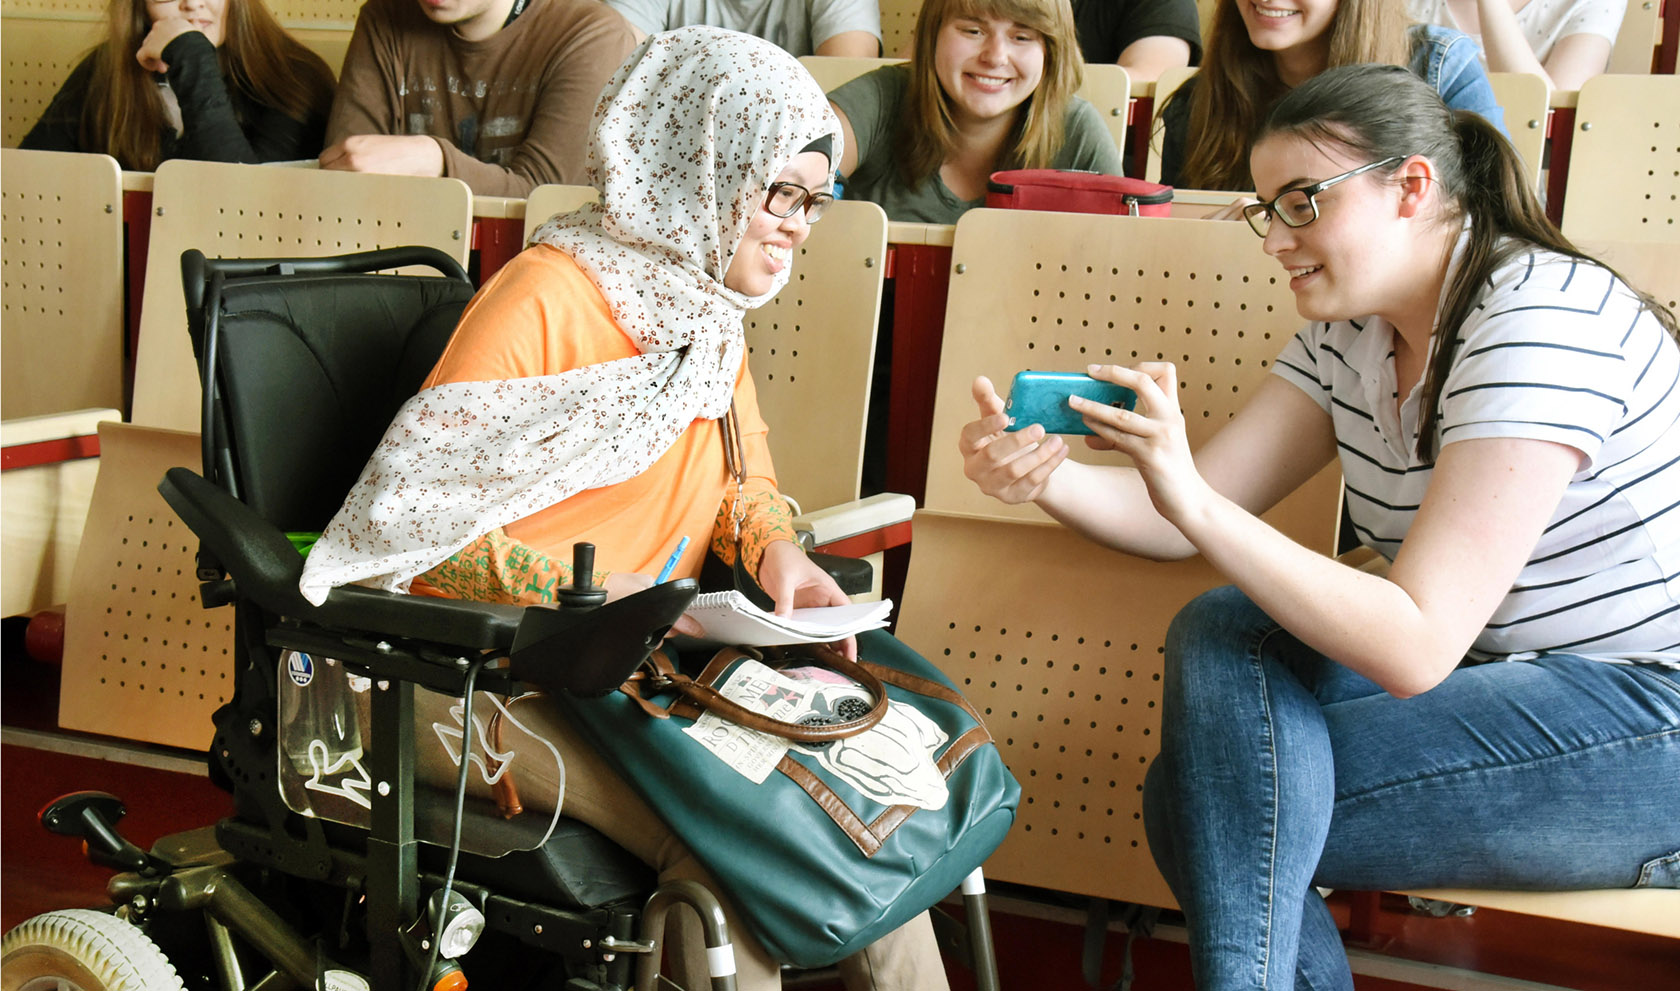 A group of students in an auditorium. One student is showing another student who is in a wheelchair something on her phone. The student in the wheelchair is wearing a hijab.